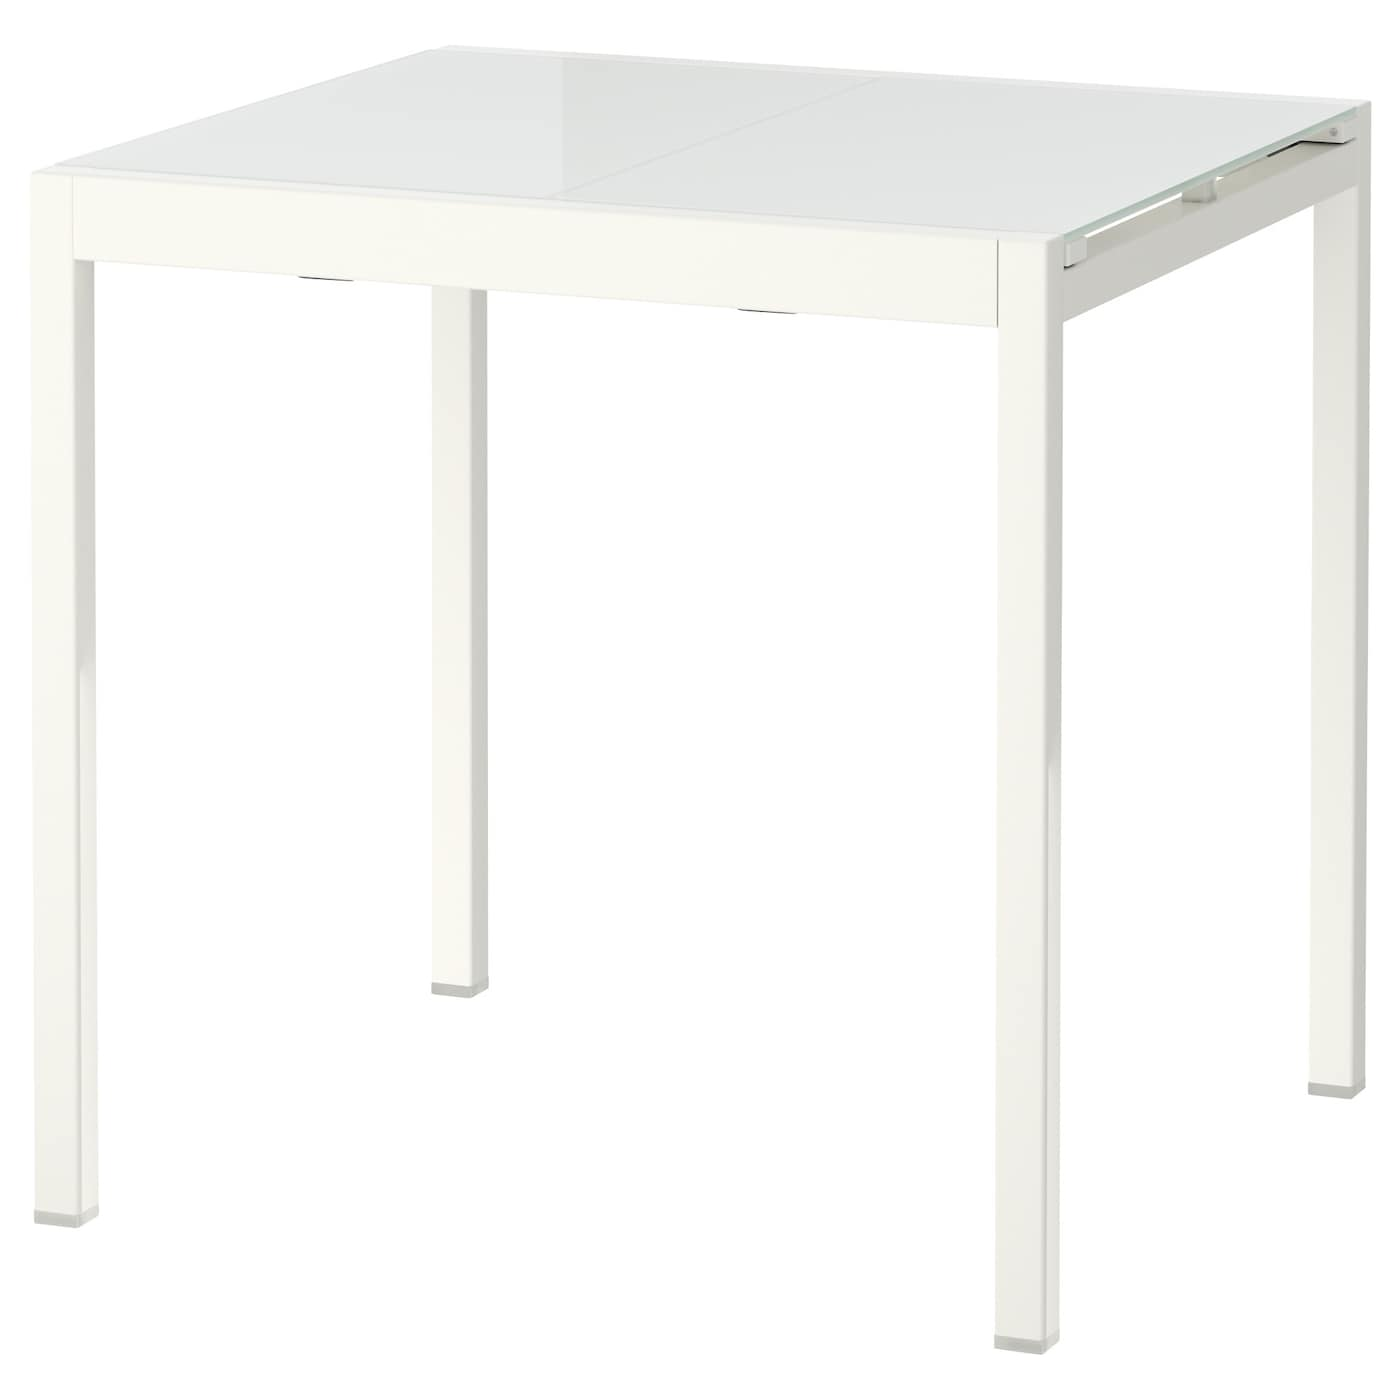 Glivarp extendable table white 75 115x70 cm ikea for Table extensible laque blanc